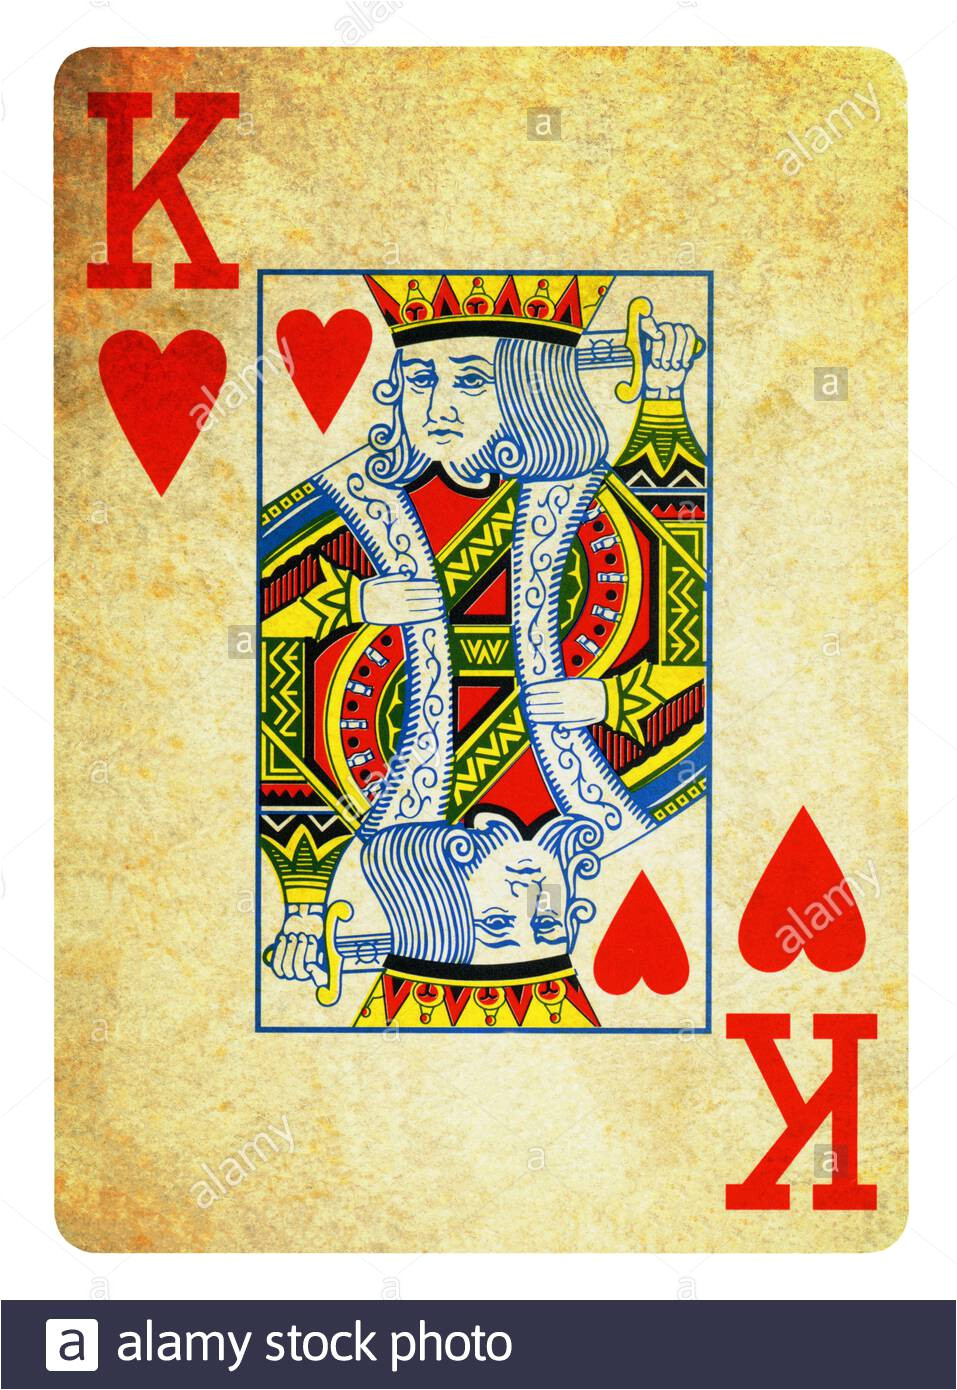 king of hearts vintage playing card isolated on white clipping path included 2agnyk3 jpg